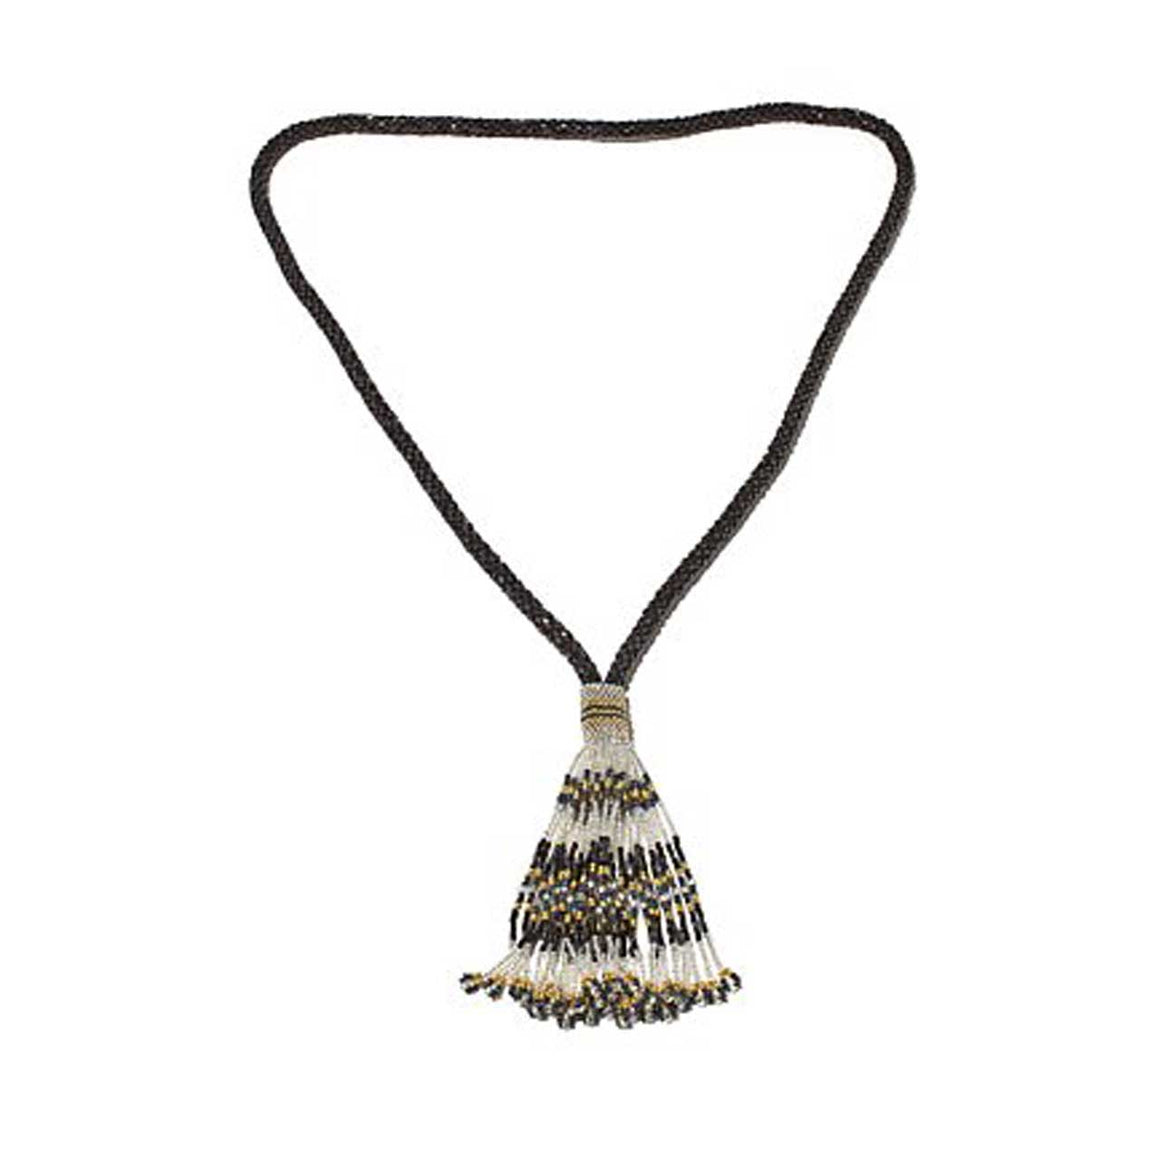 Black Bugle Bead Potay Y-Necklace with Tassell